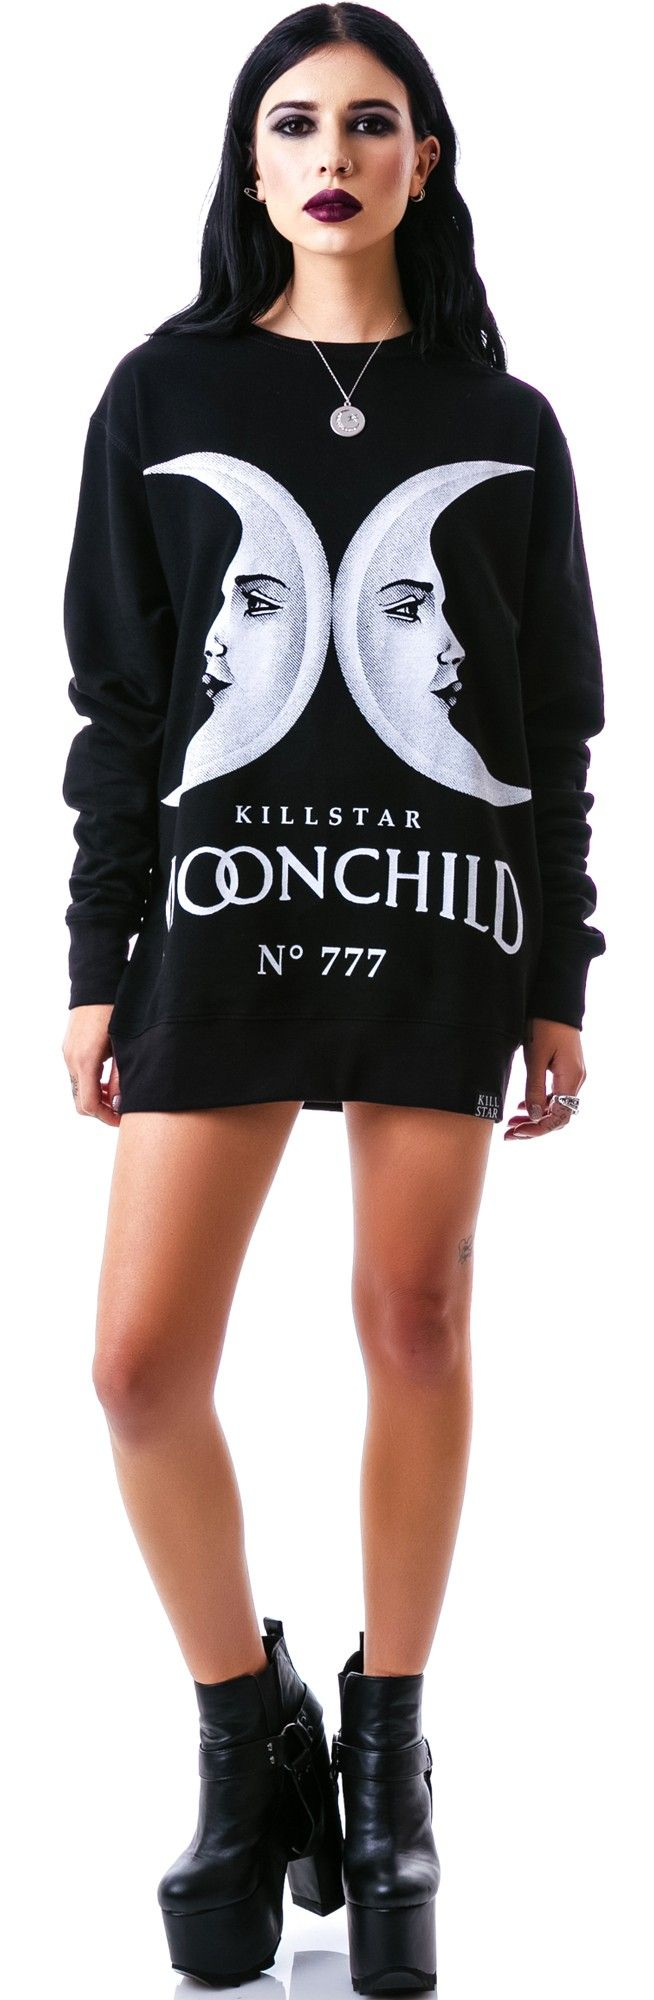 Kill Star Moon Child Sweatshirt | Dolls Kill